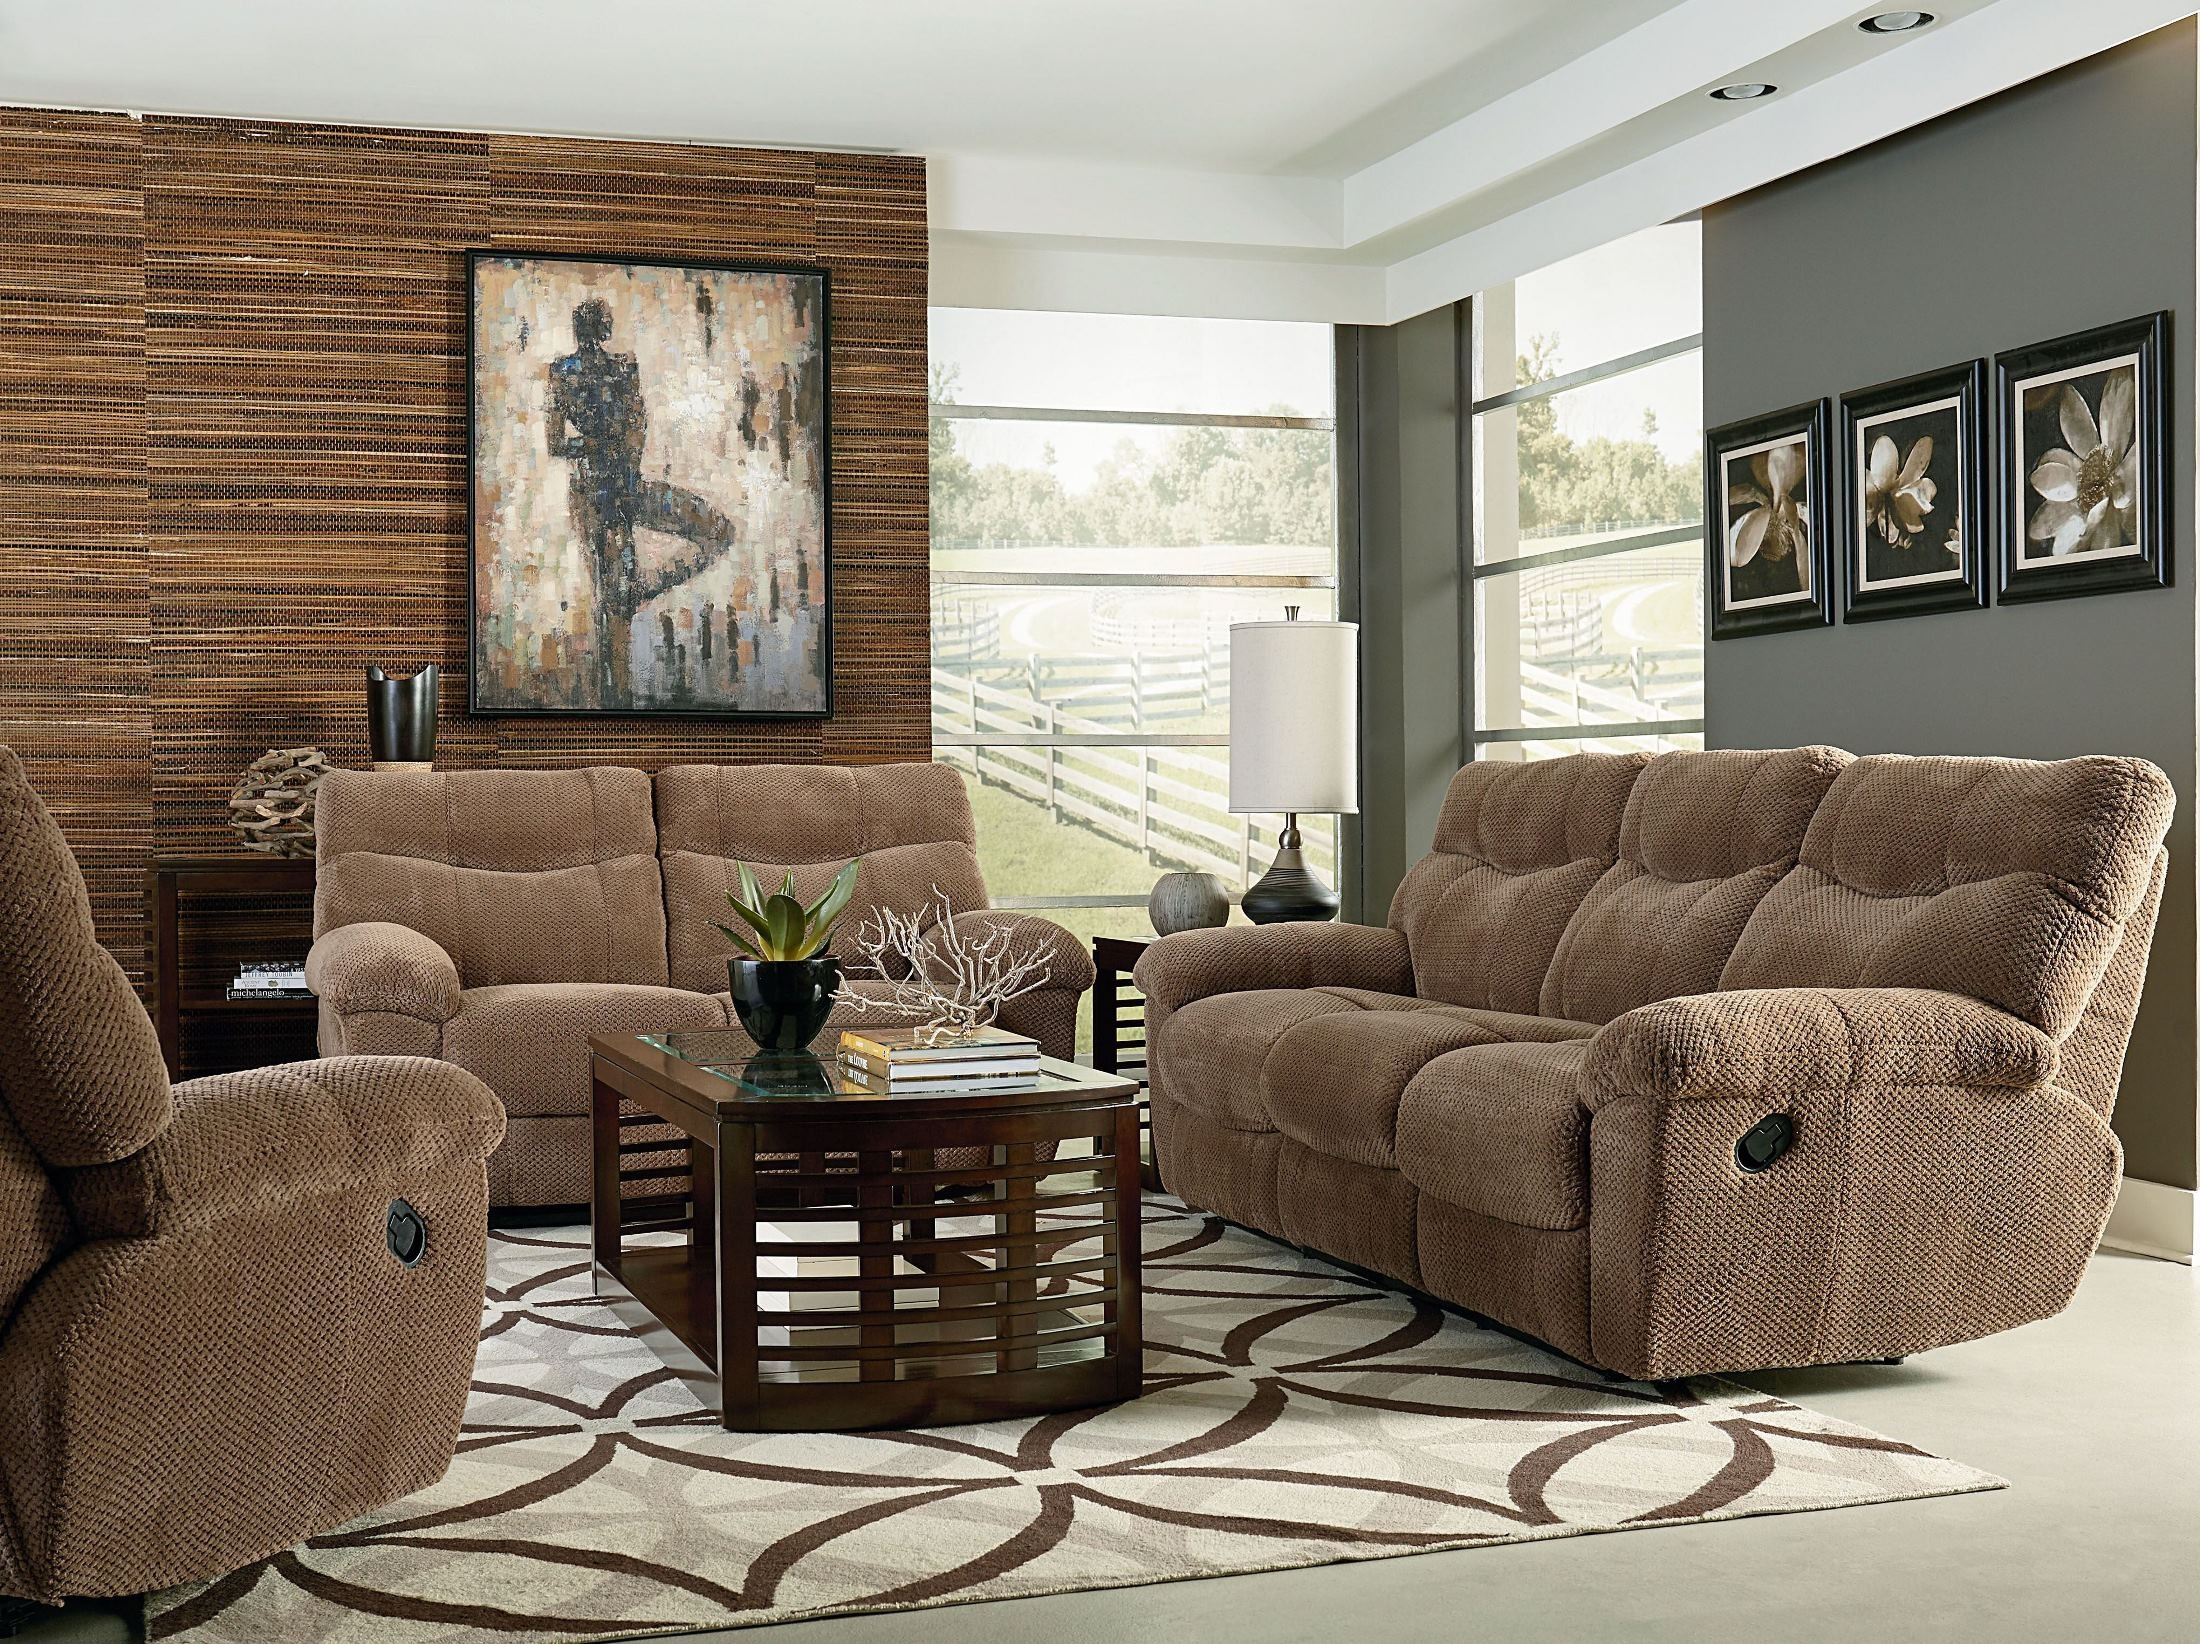 Escapade taupe brown reclining living room set 4012391 for Brown taupe living room